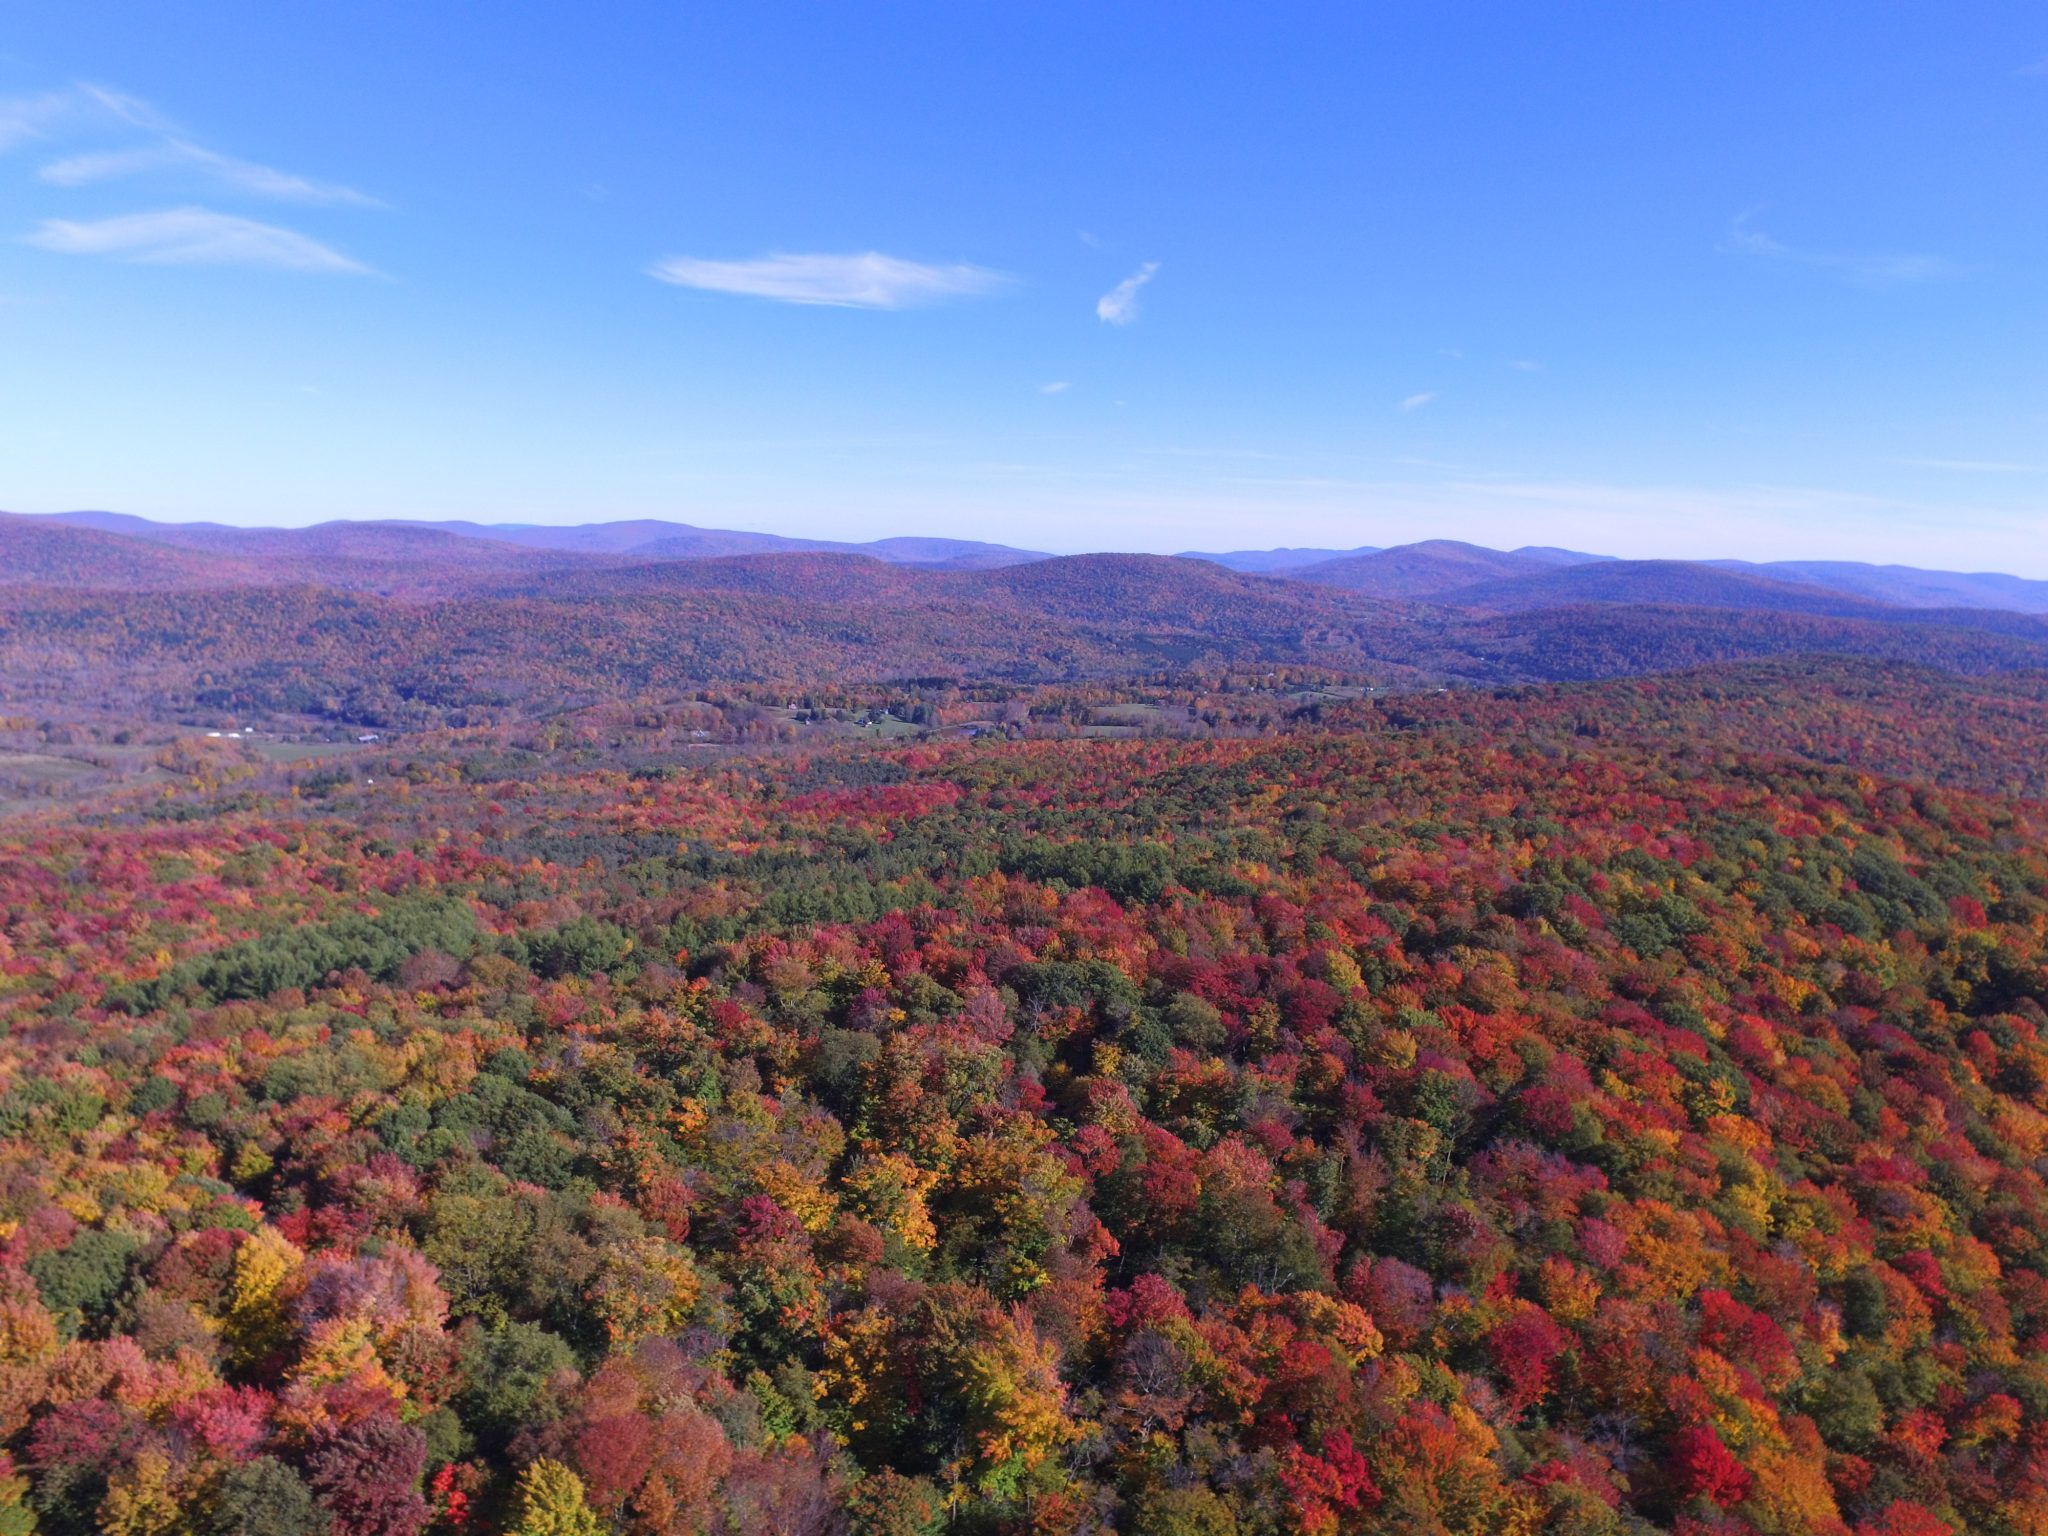 Aerial Photography in Fall from a Drone